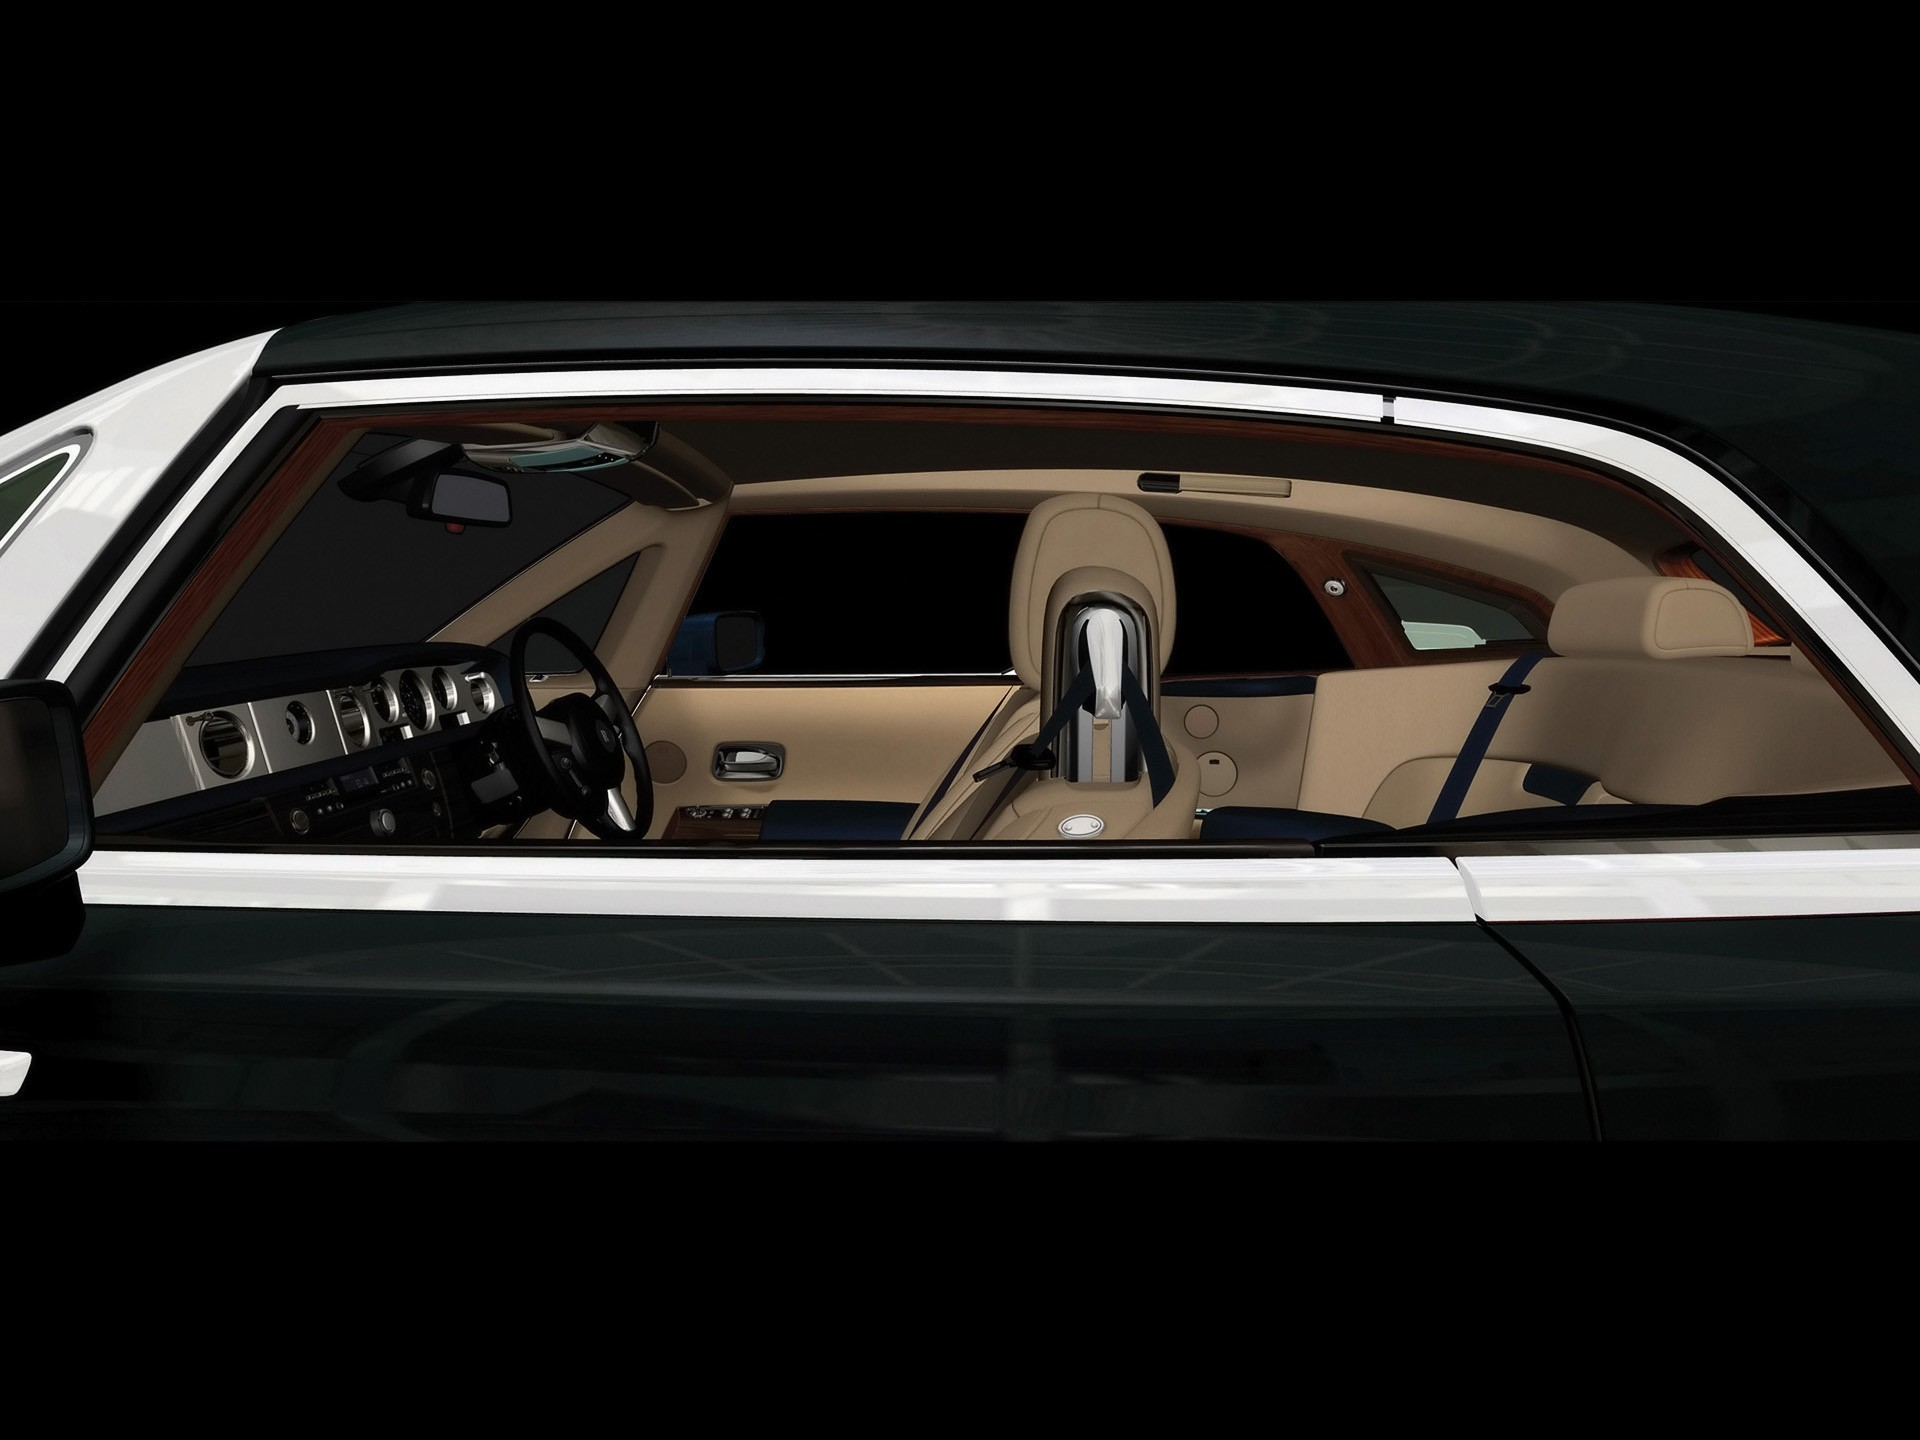 interior car interiors Rolls HD Wallpaper